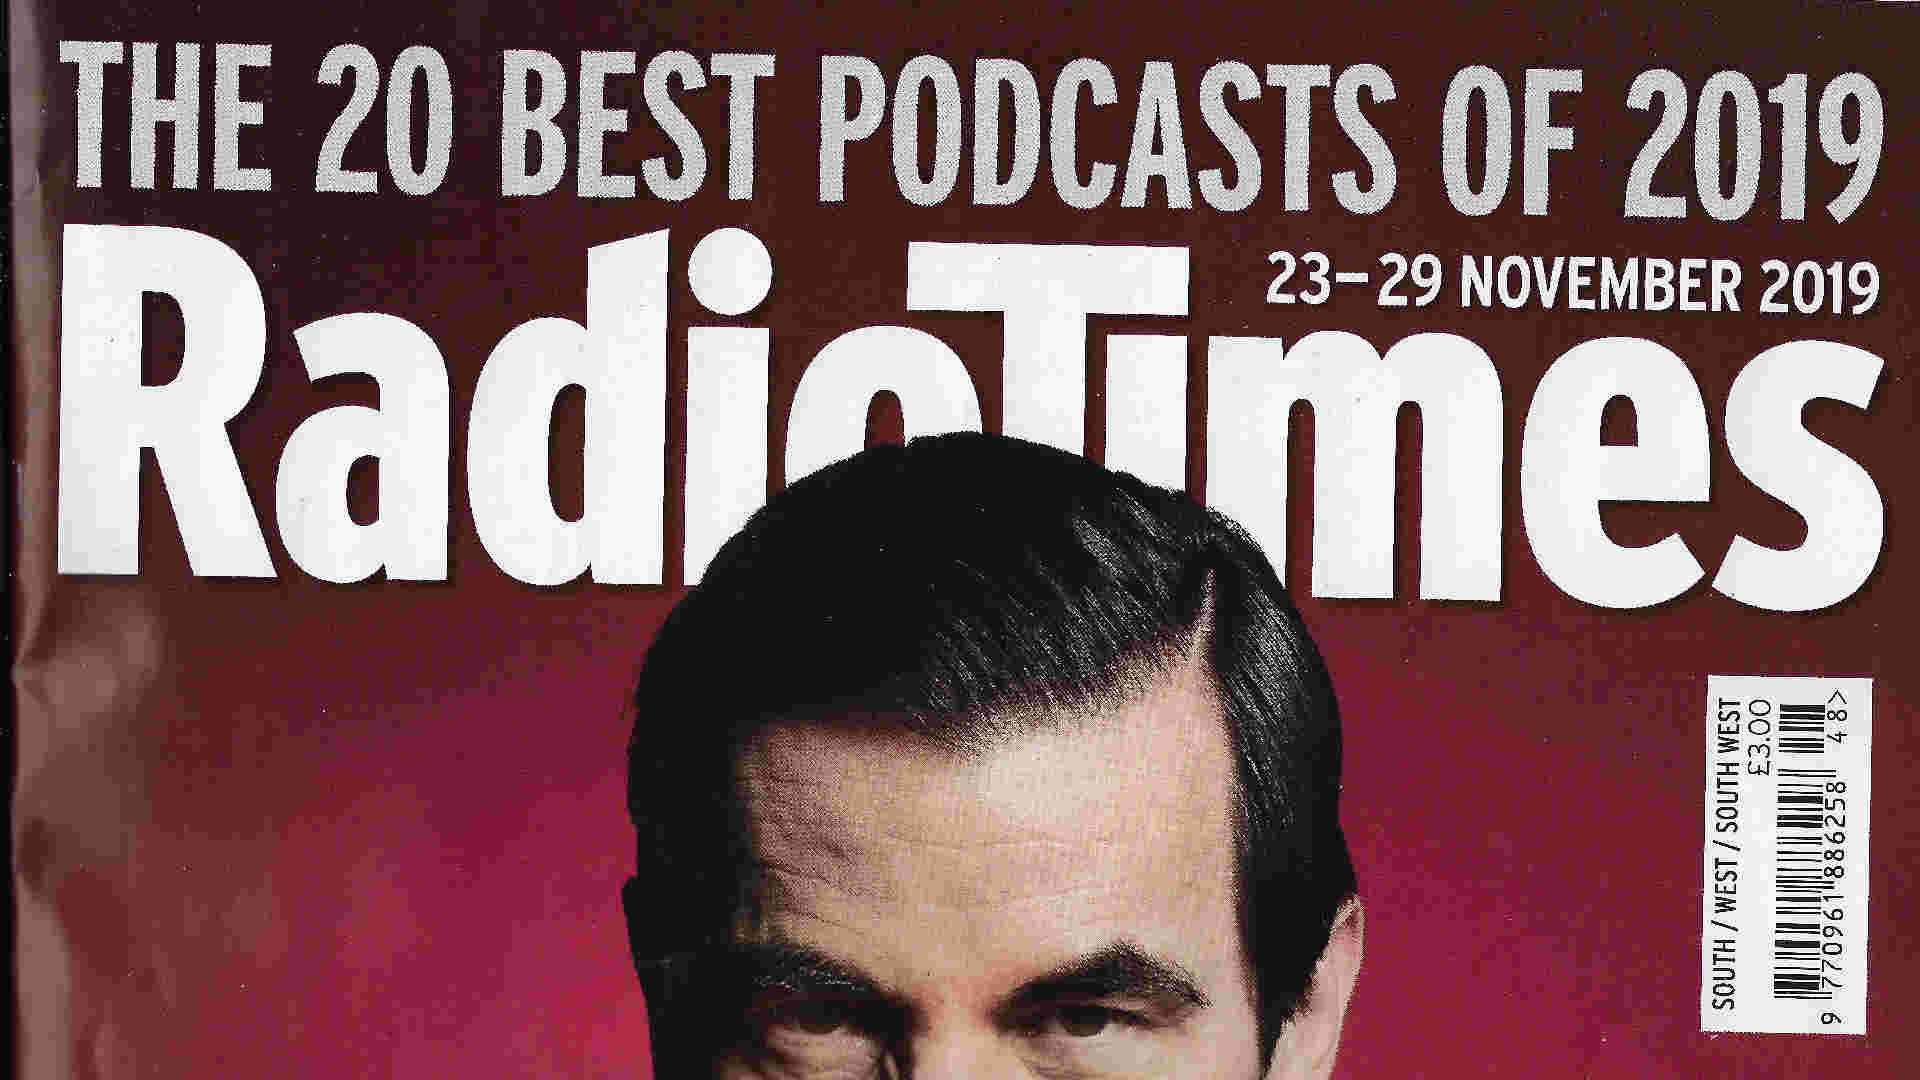 Mainstream Podcasting Fails To Deliver